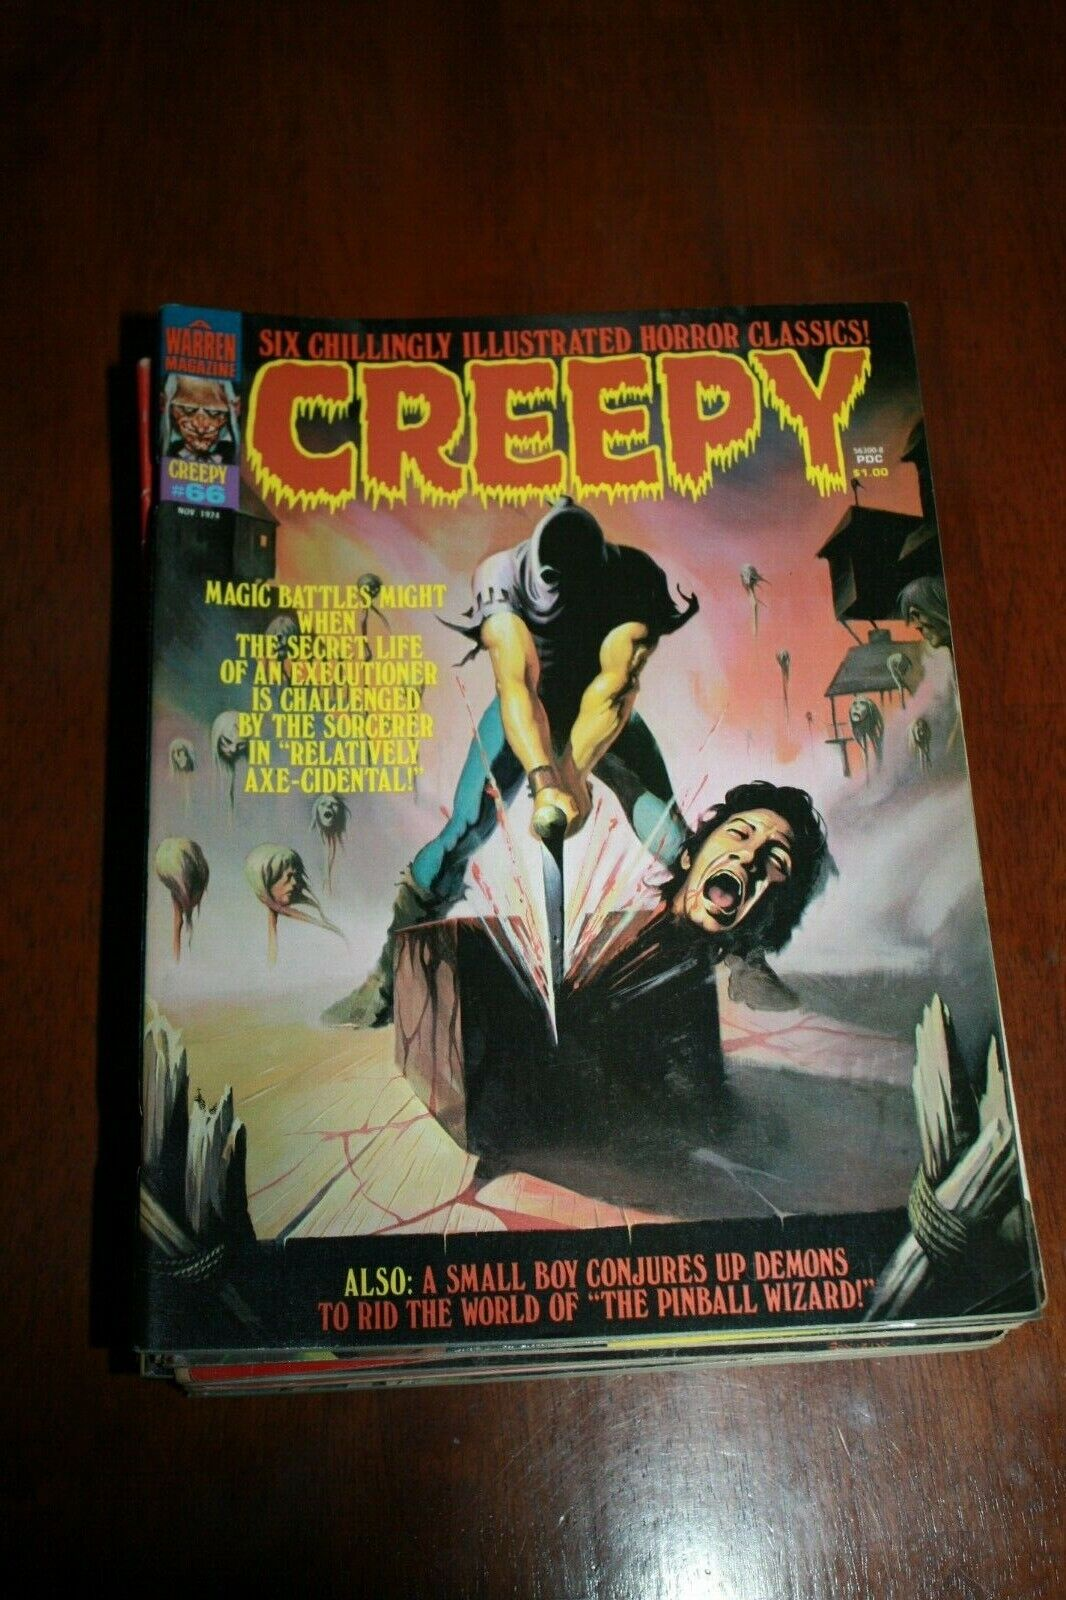 CREEPY MAGAZINE NO. 66 IS IN NEAR MINT CONDITION AND IS BAGGED AND BOARDED